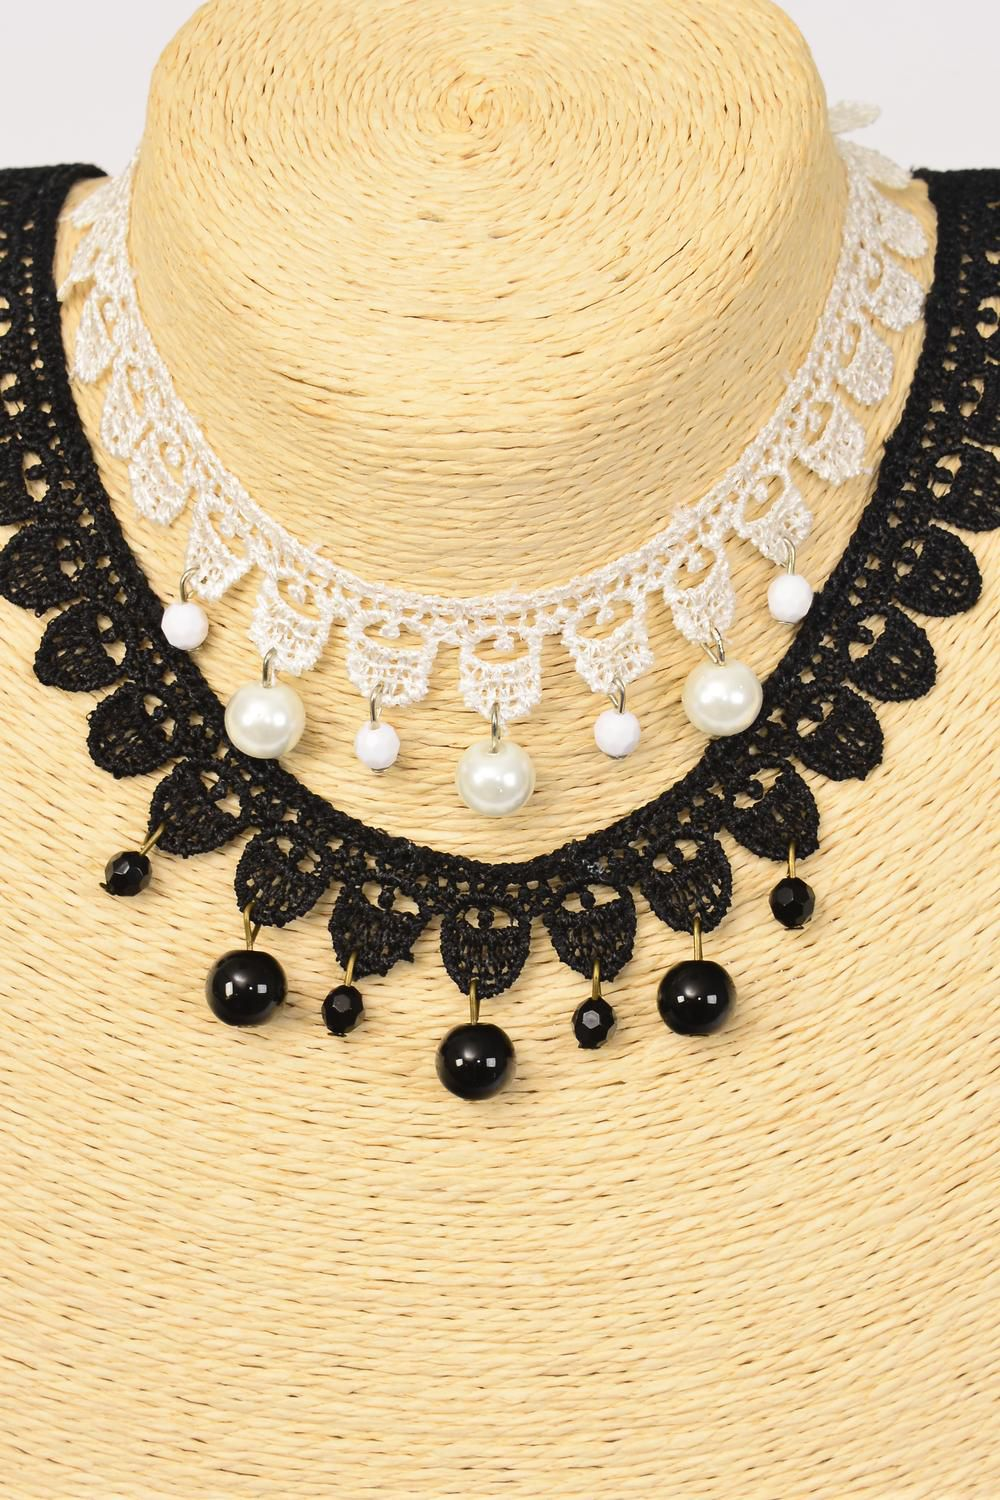 "Necklace Choker Lace Pearl Drops/DZ Size-14"" W Extension Chain,6 Black,6 White Asst,Display Card & OPP Bag & UPC Code"